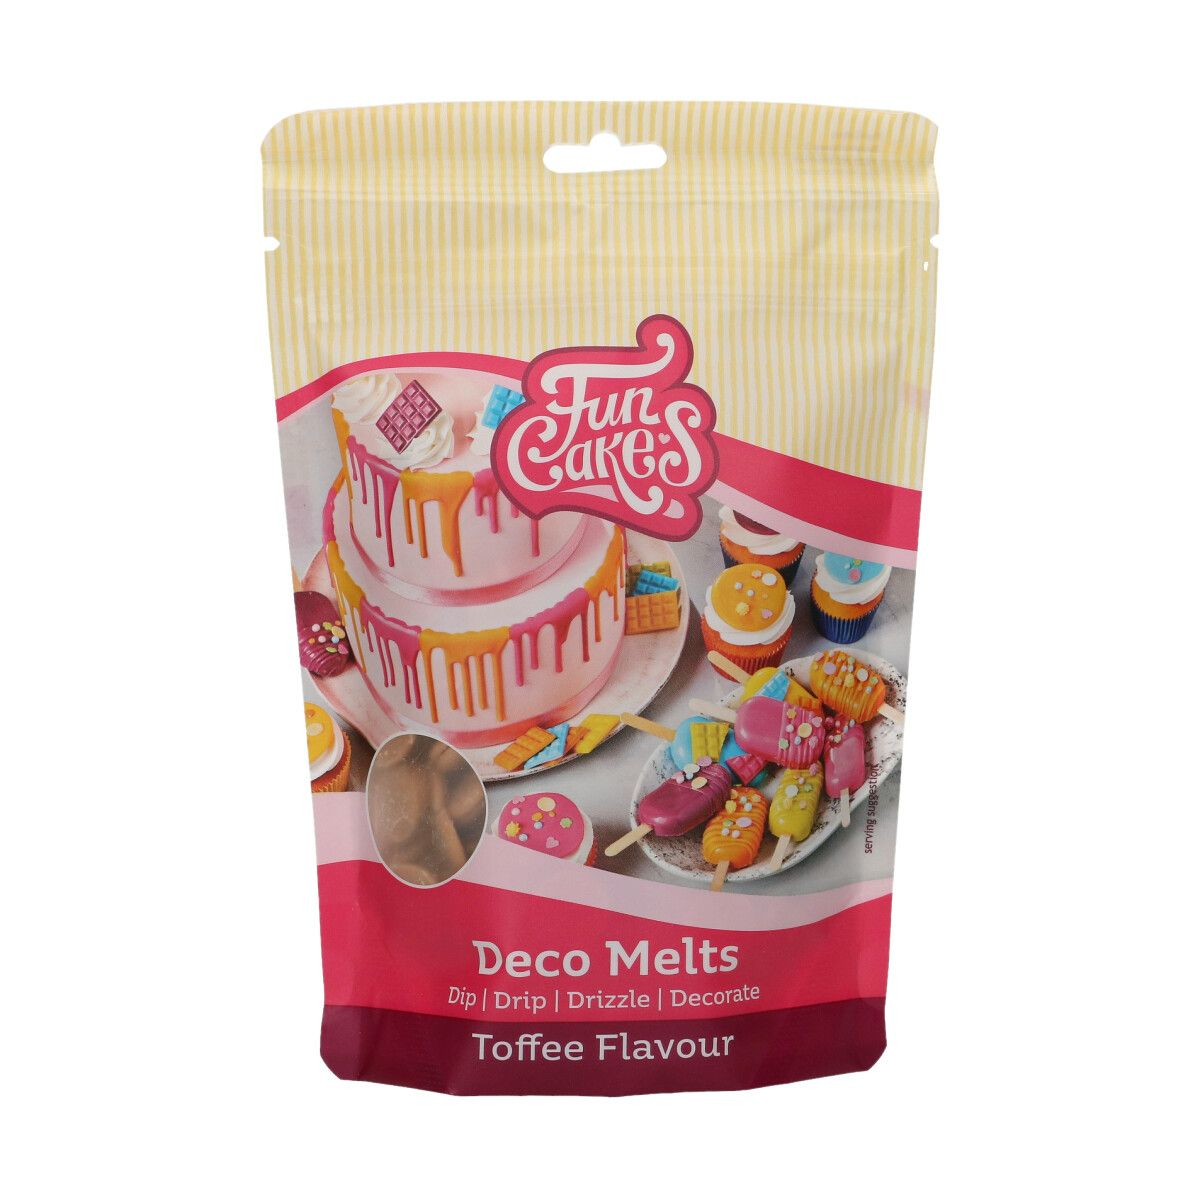 FunCakes Deco Melts - Toffee Flavour- 250g